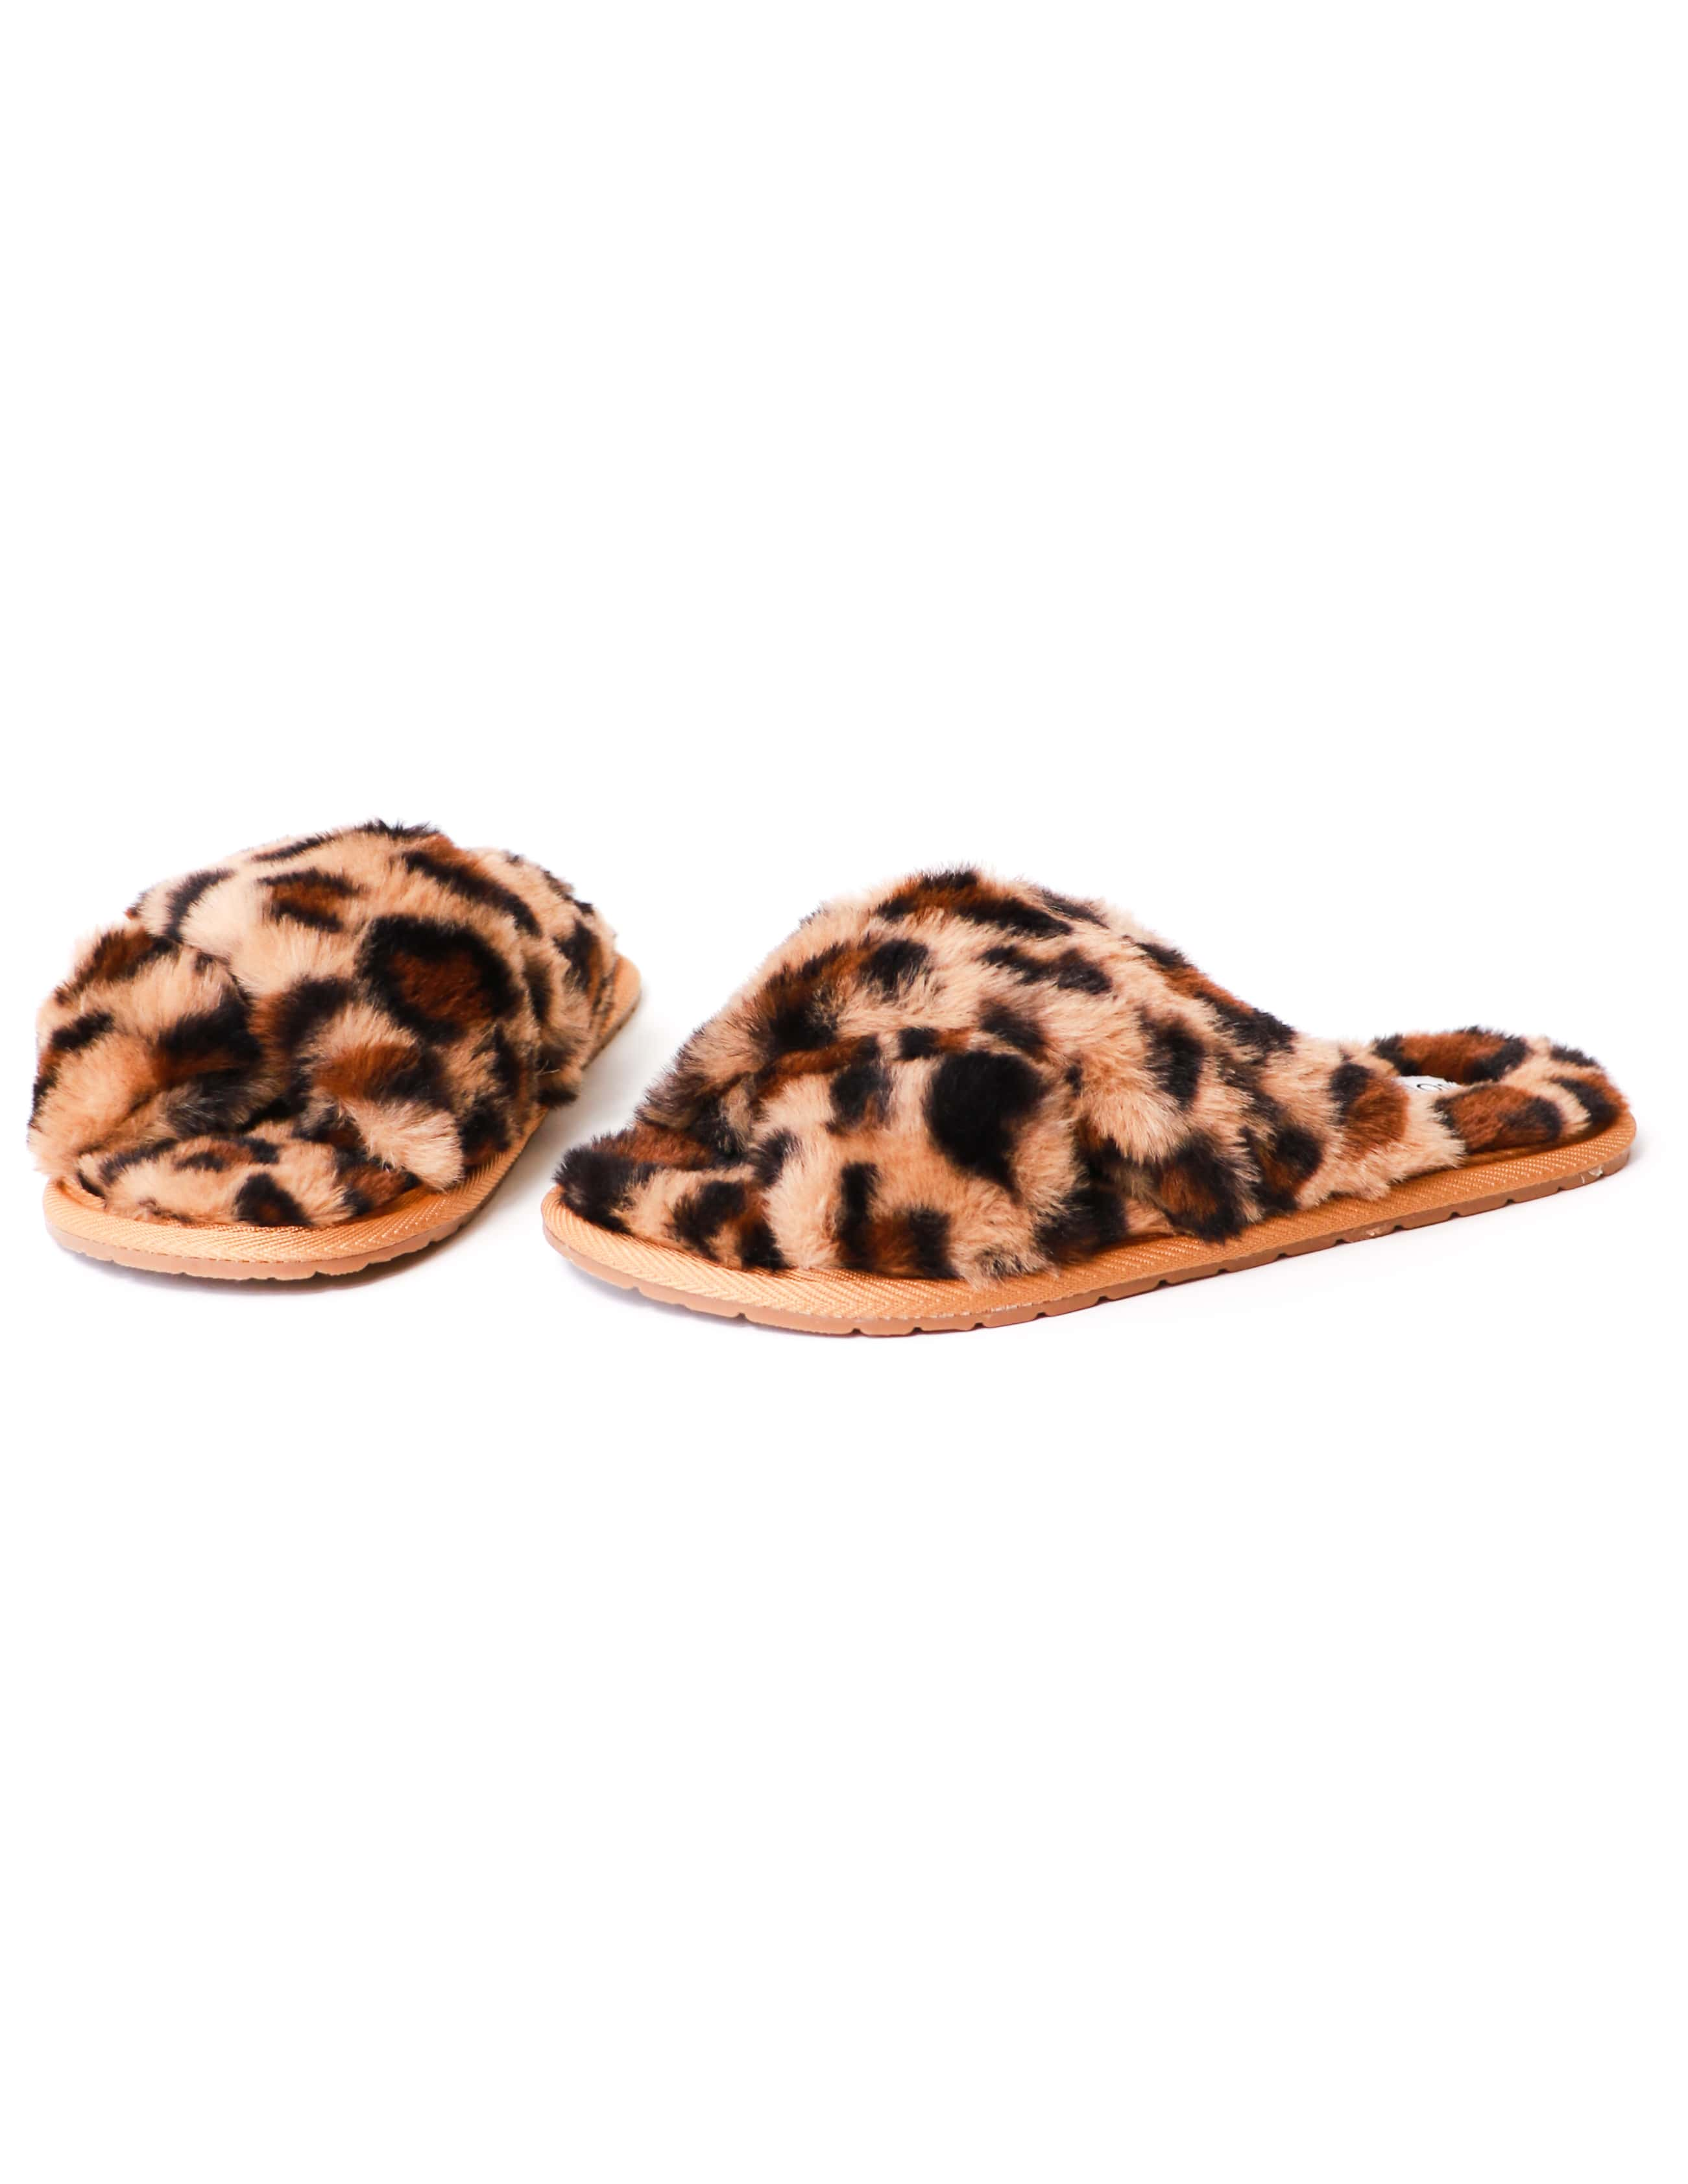 Criss cross fluffy fur slide slipper on white background - elle bleu shoes